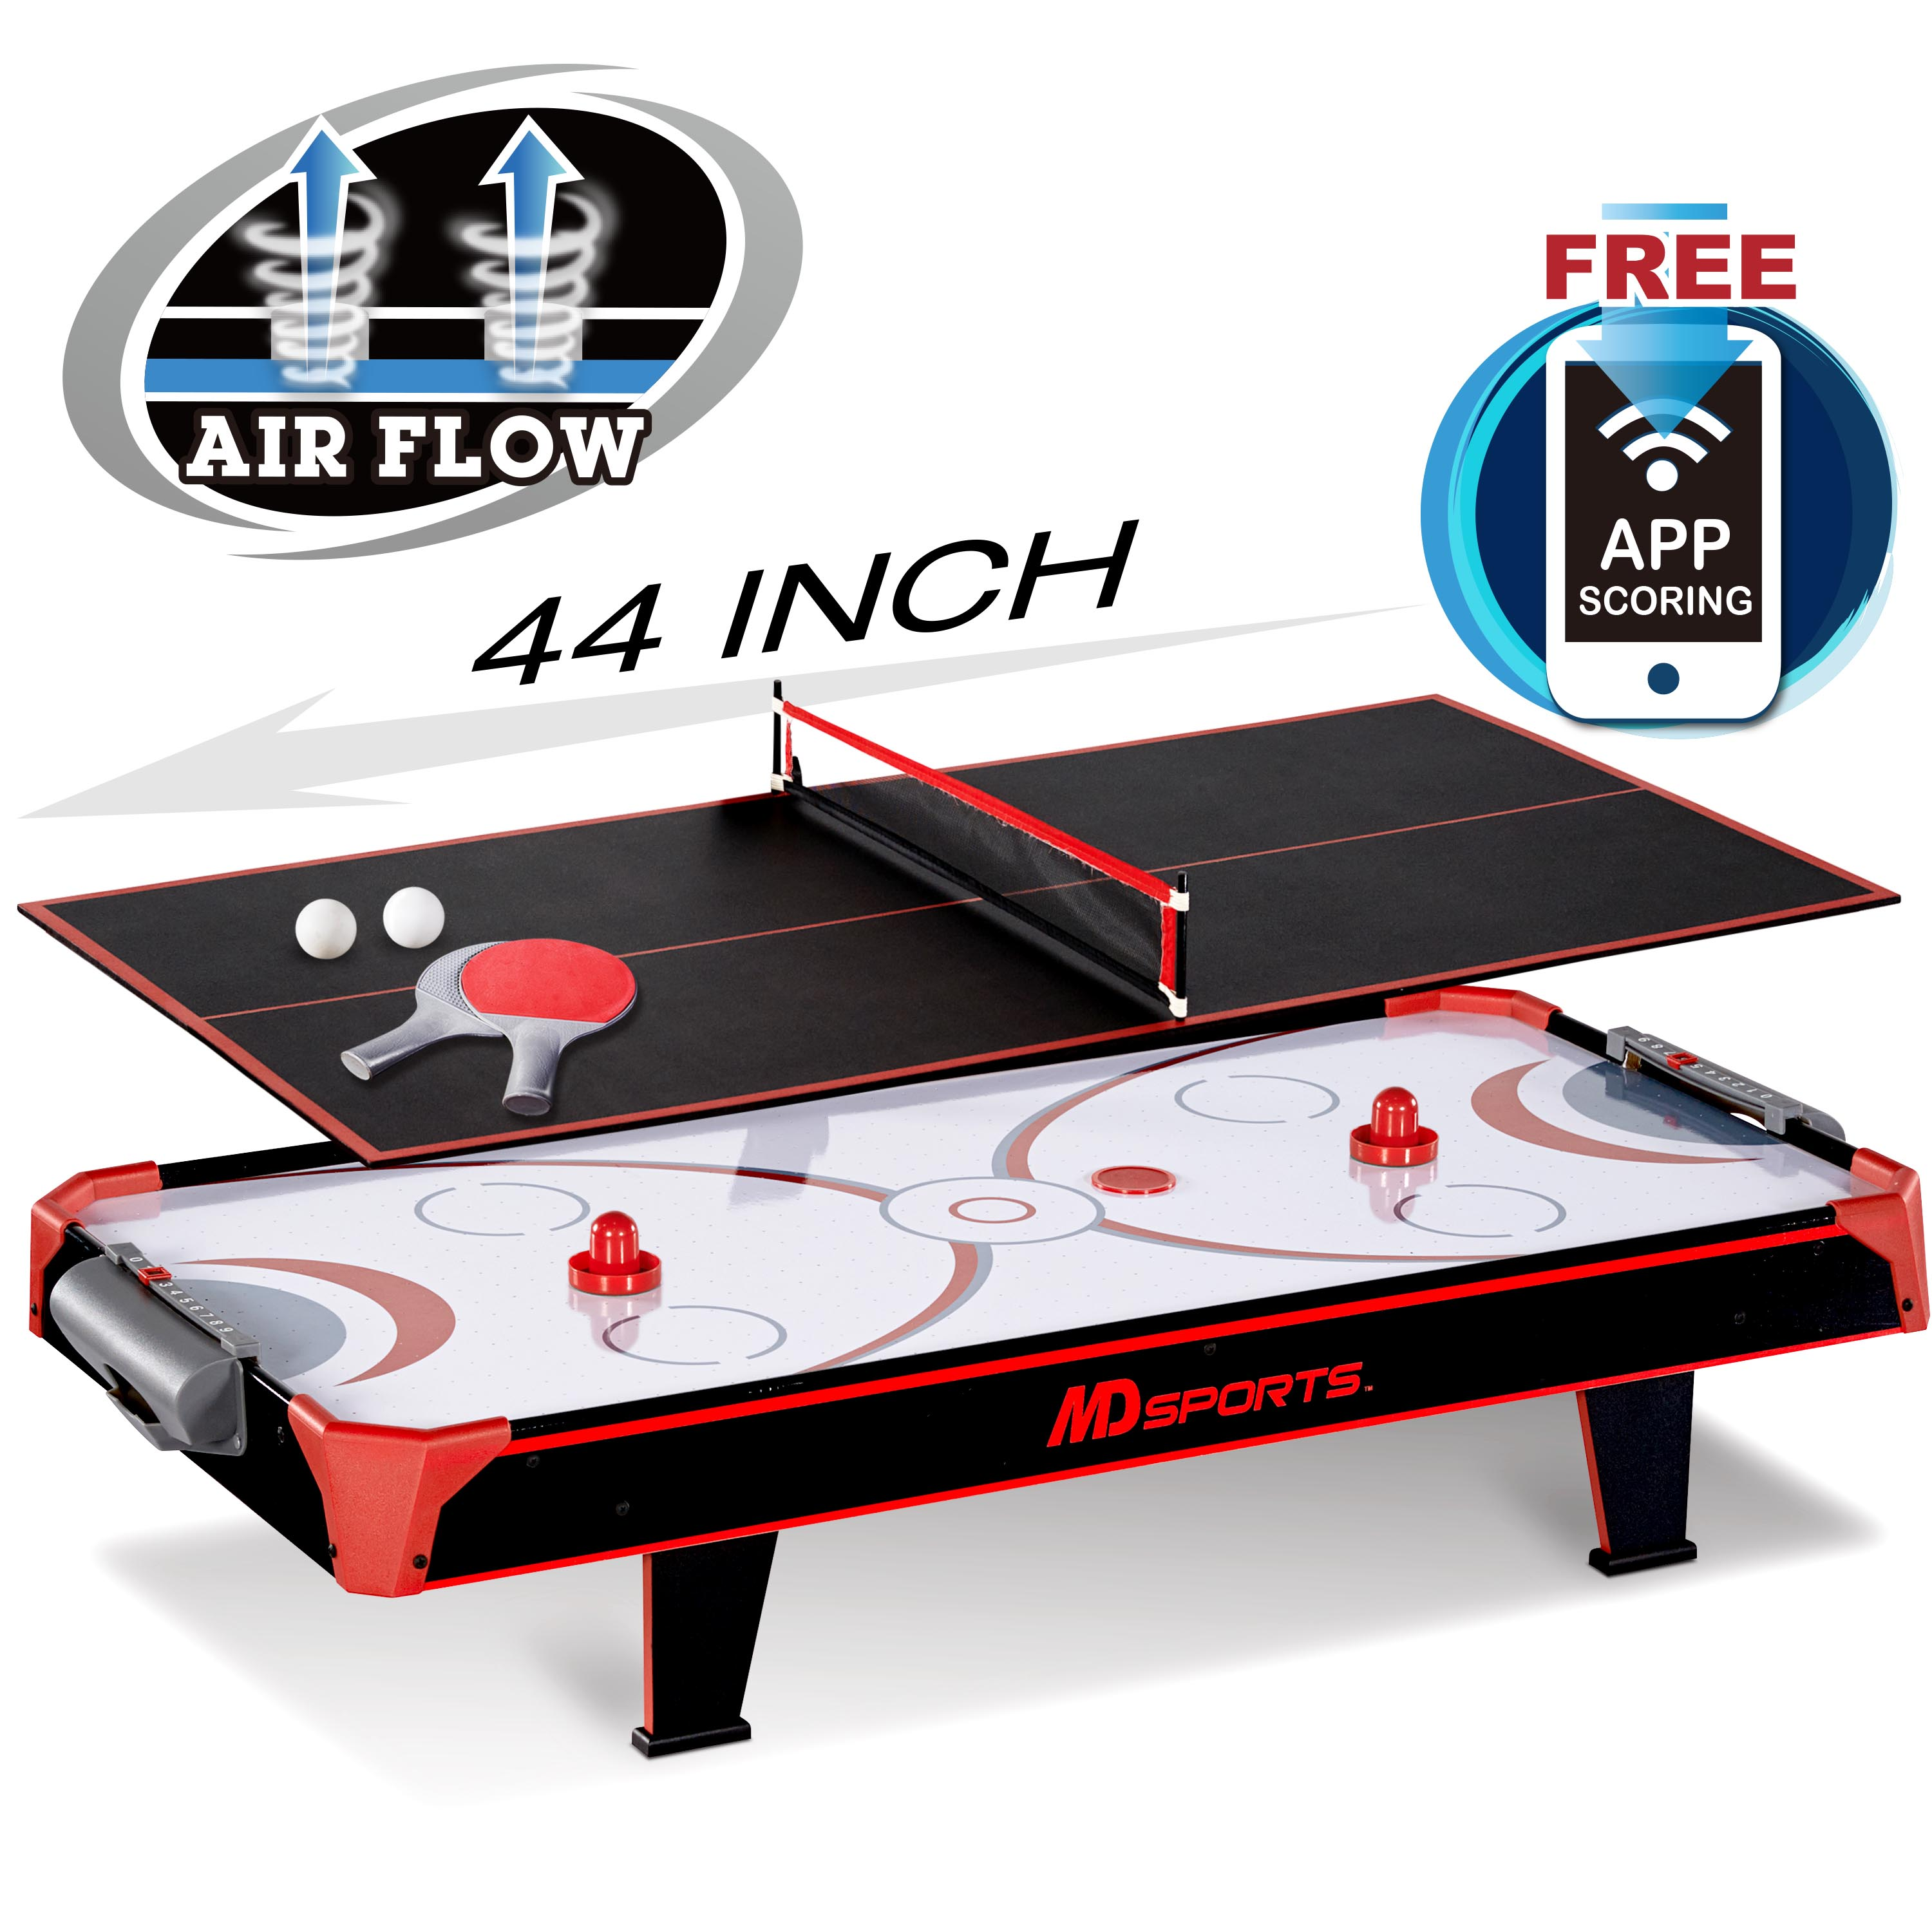 MD Sports 44 Inch Air Powered Hockey Table Top With Table Tennis Top With  APP Scorer   Walmart.com